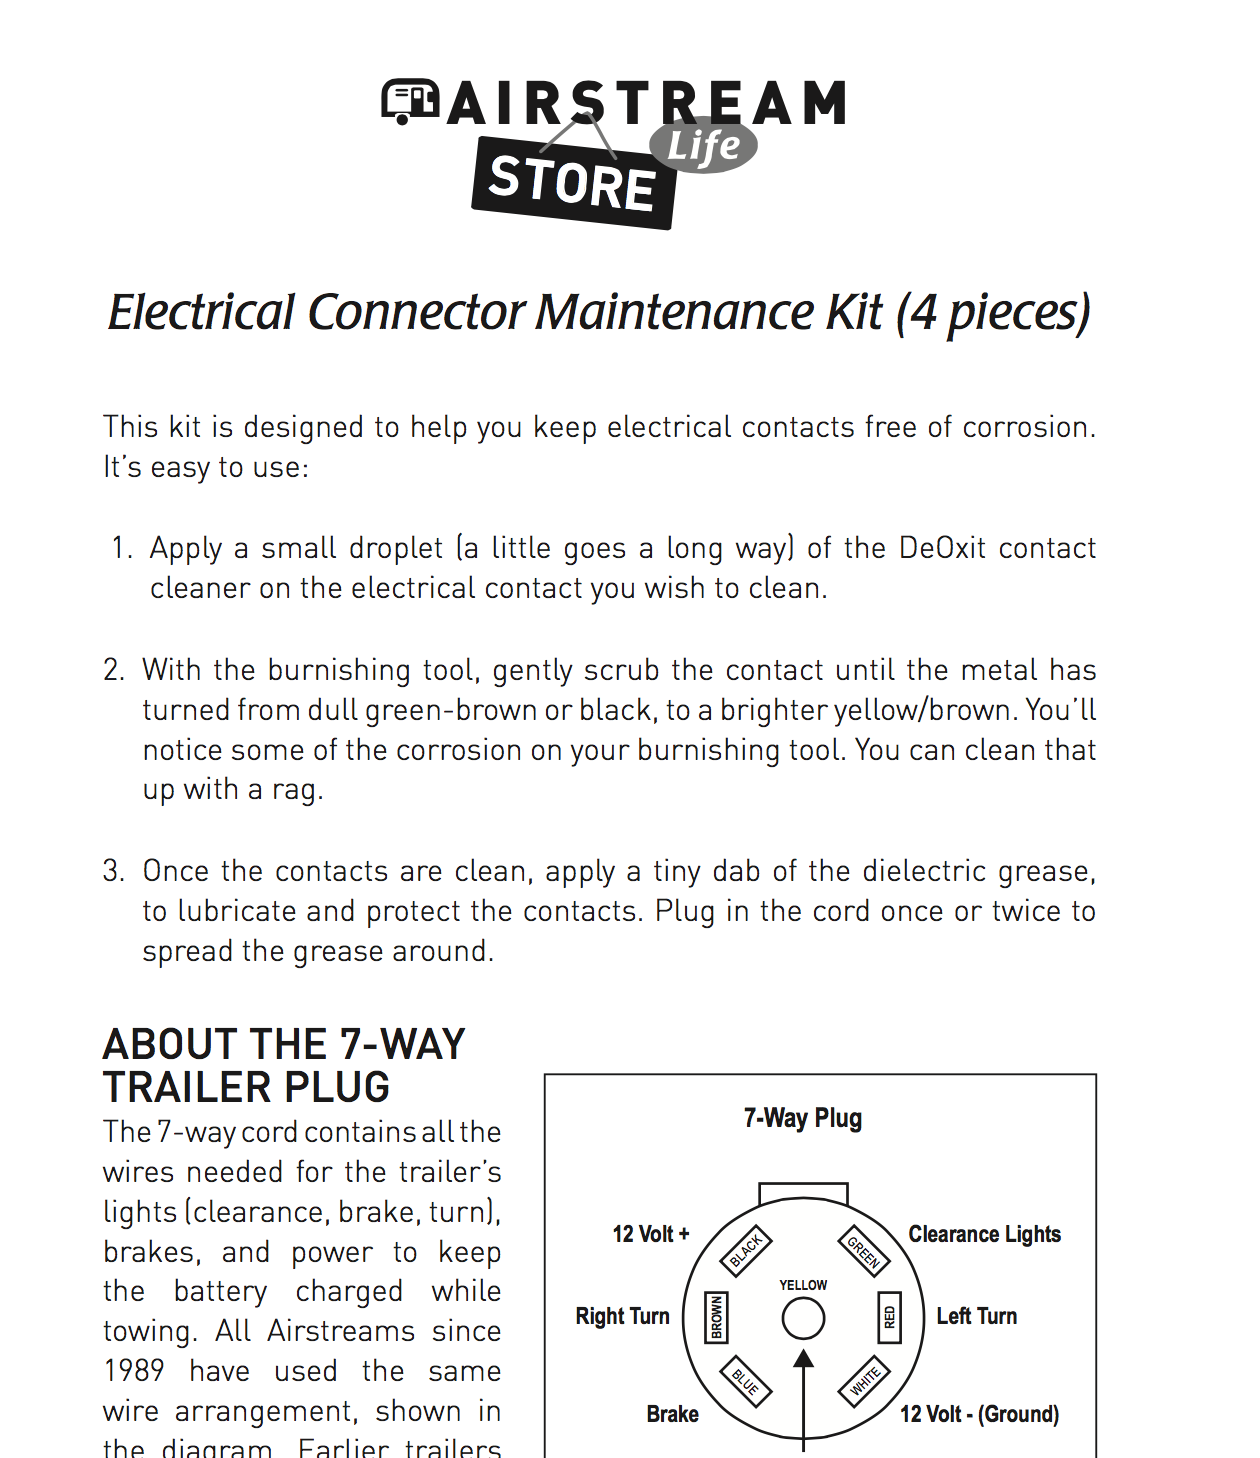 Airstream 7 Pin Wiring Diagram Vintage Trailer Electrical Connector Maintenance Kit 4 Pcs Life Store Gmc